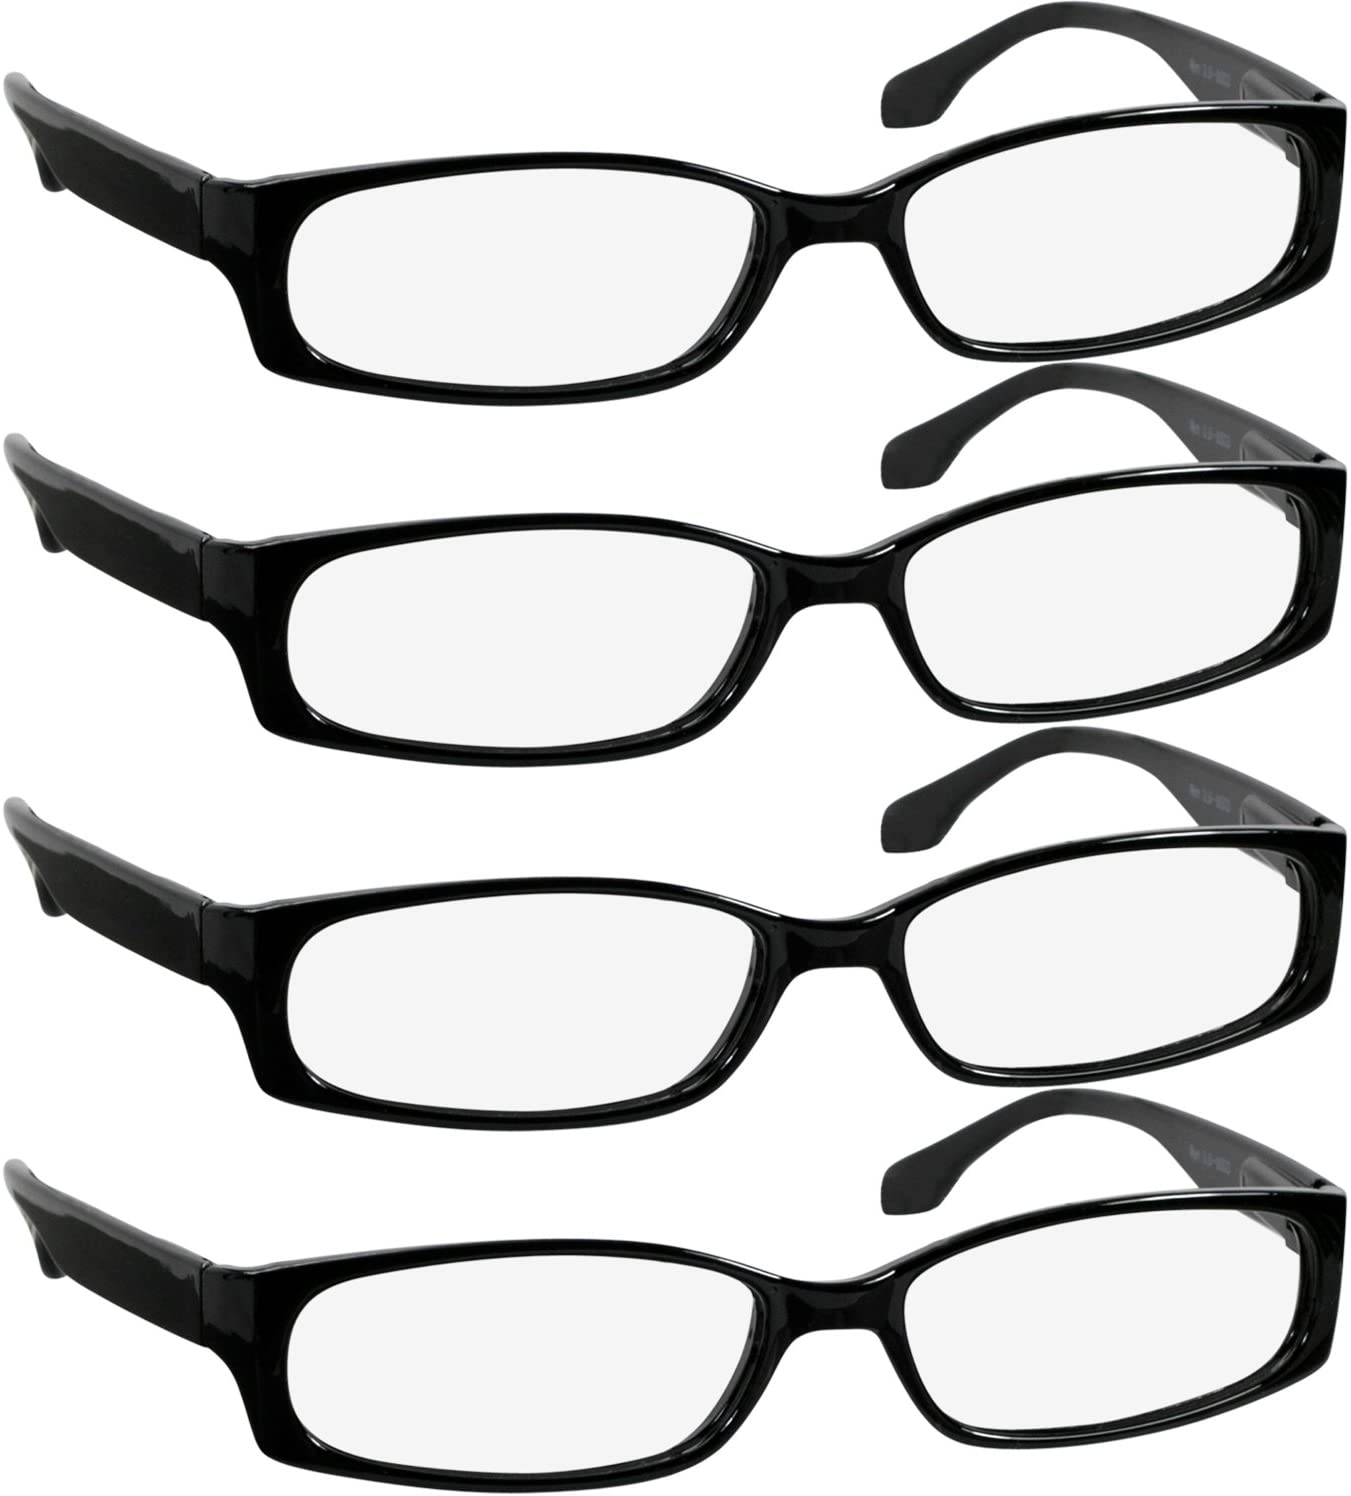 Reading Glasses 0.75 Best 4 Pack Black Readers for Men and Women Always Have a Stylish Look and Crystal Clear Vision When You Need It! Comfort Spring Arms & Dura-Tight Screws